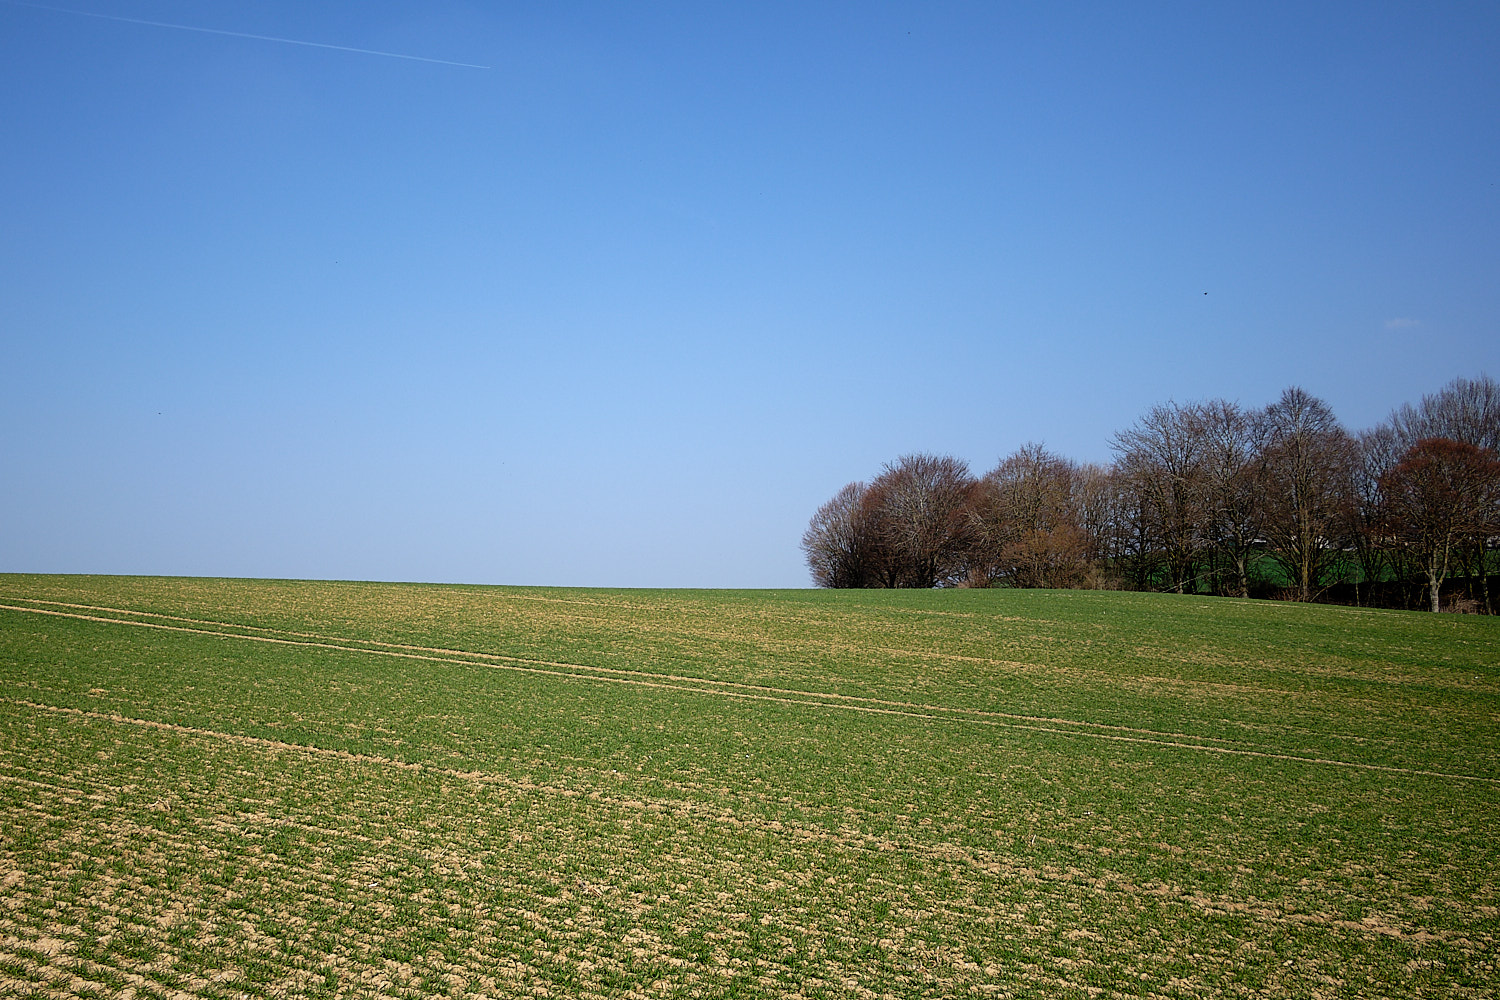 The soft hills covered of fields in south bavaria glitter with evaporation in the warming spring midday.